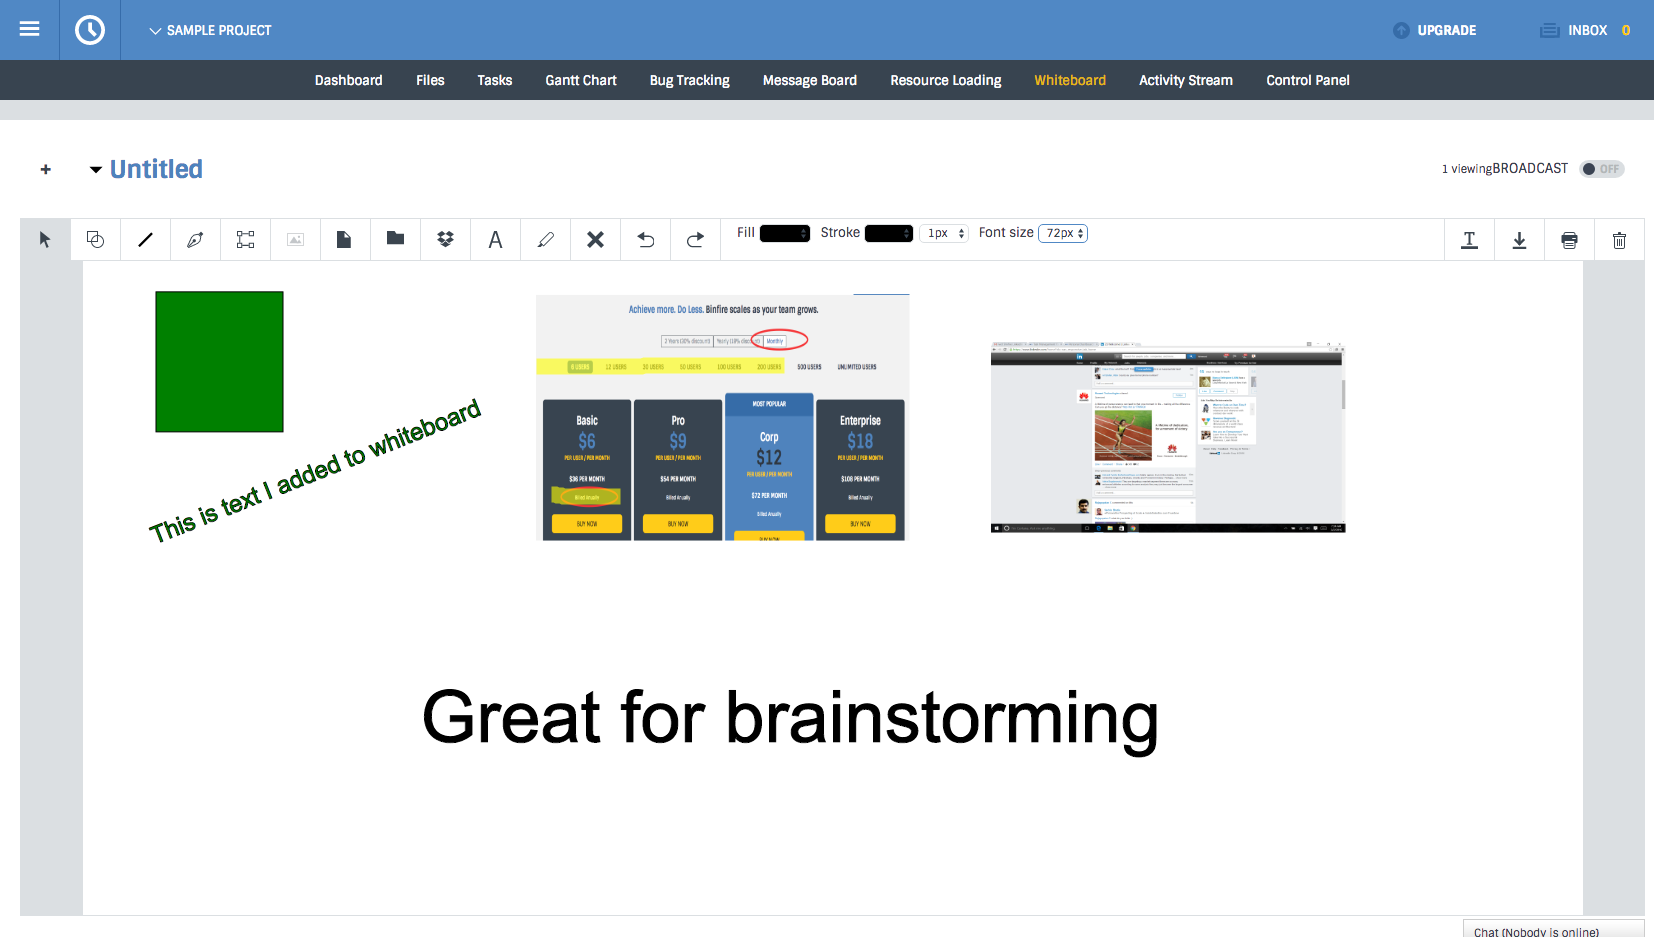 Interactive whiteboard is great tool for brainstorming | Binfire